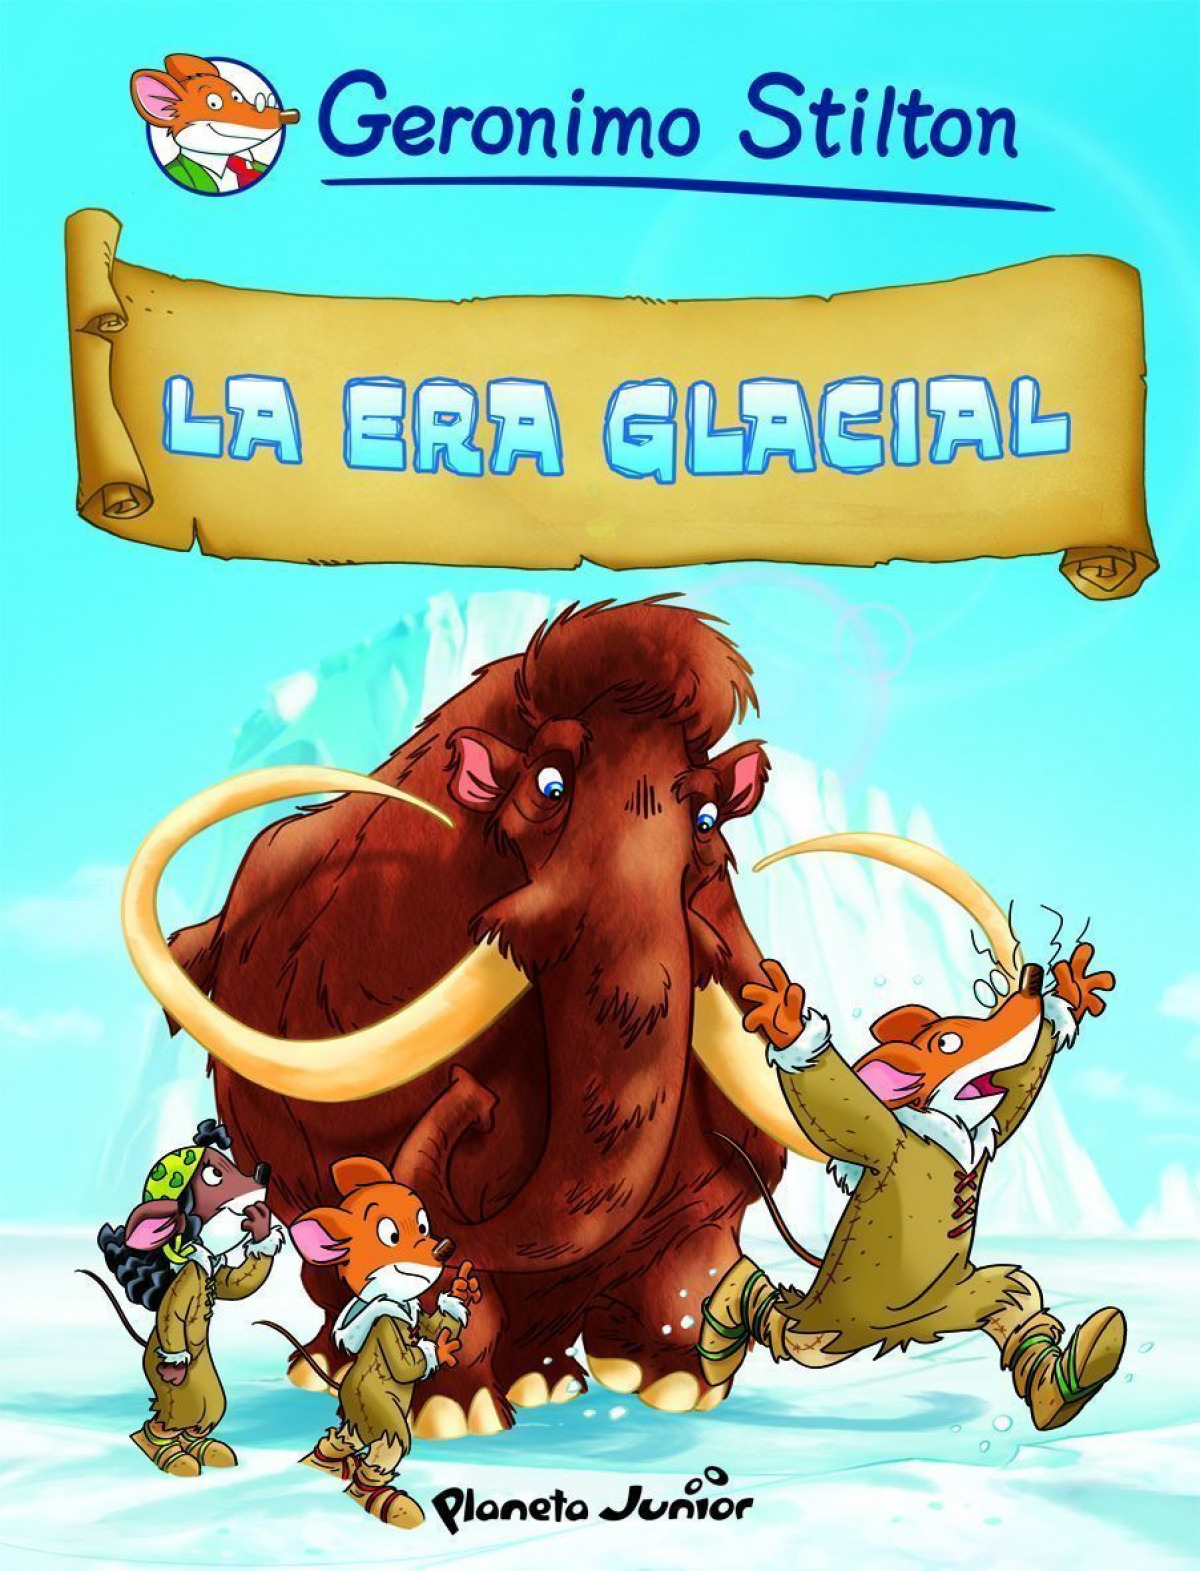 La era glacial Cómic Geronimo Stilton 4 - Geronimo Stilton